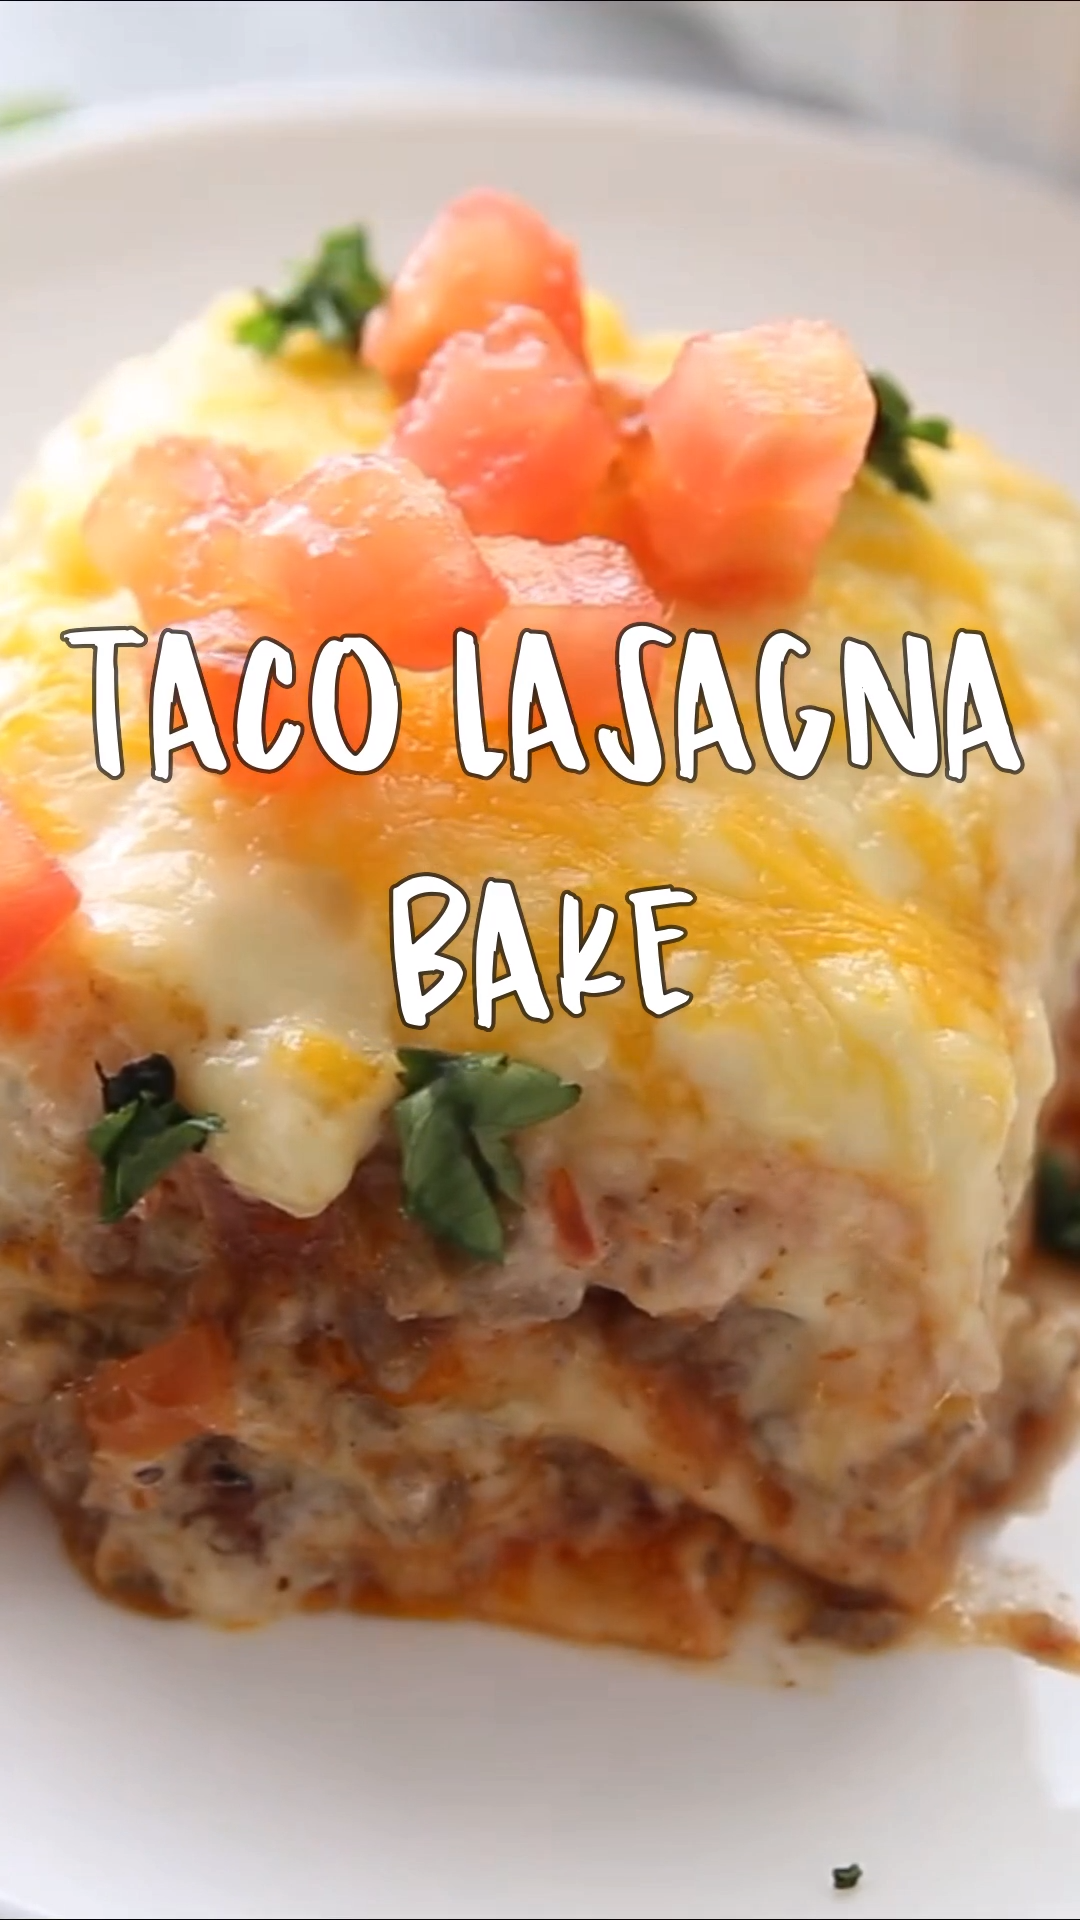 Taco Lasagna Bake Recipe images